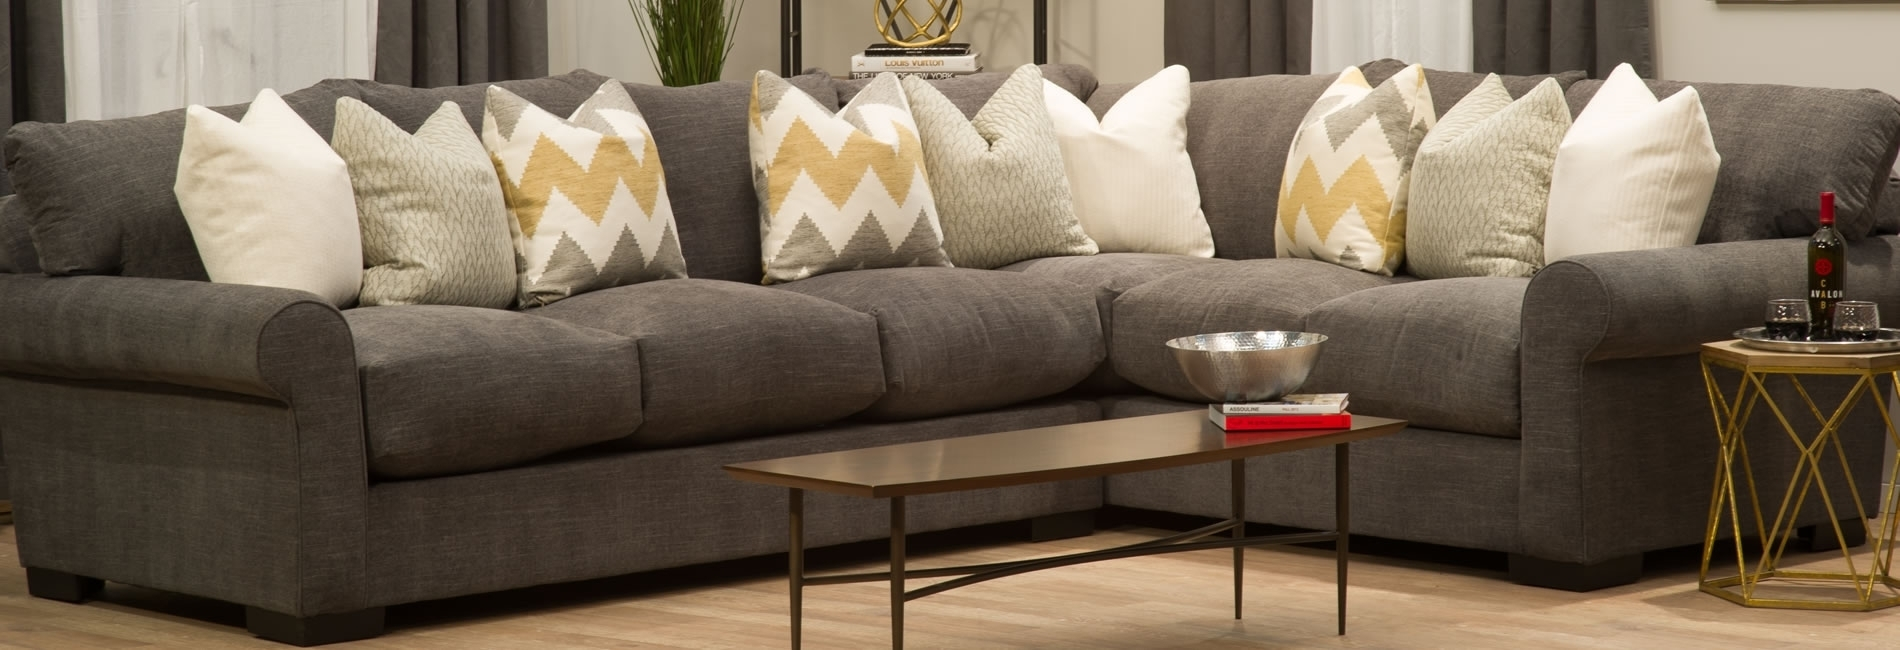 Sectional Sofas Atlanta | Freedom To With Regard To Sectional Sofas In Atlanta (View 2 of 10)